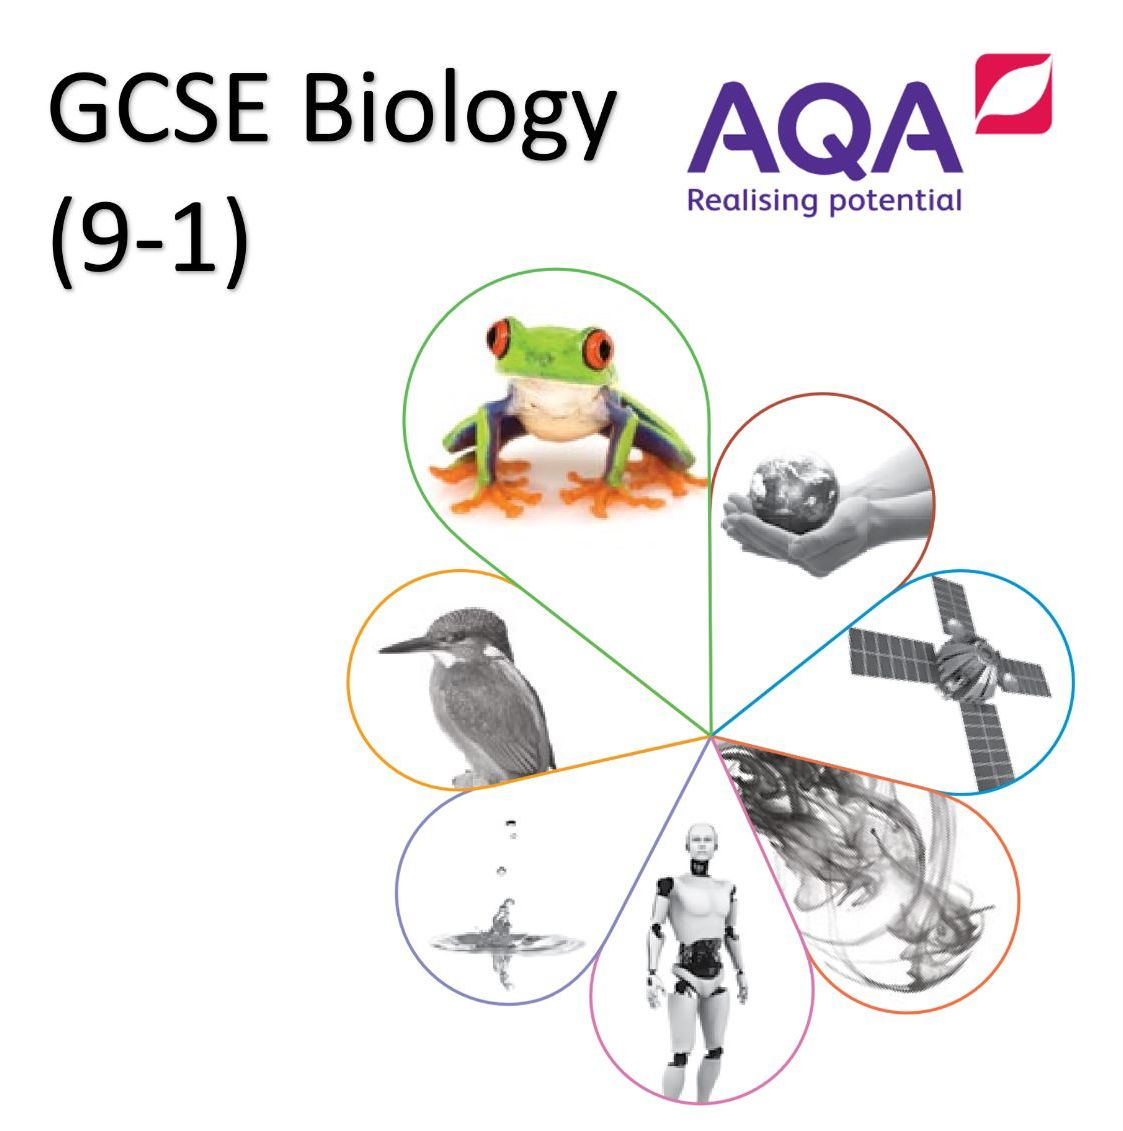 AQA GCSE Biology (9-1) Paper 1 Double and Triple Science Revision Summary Sheets